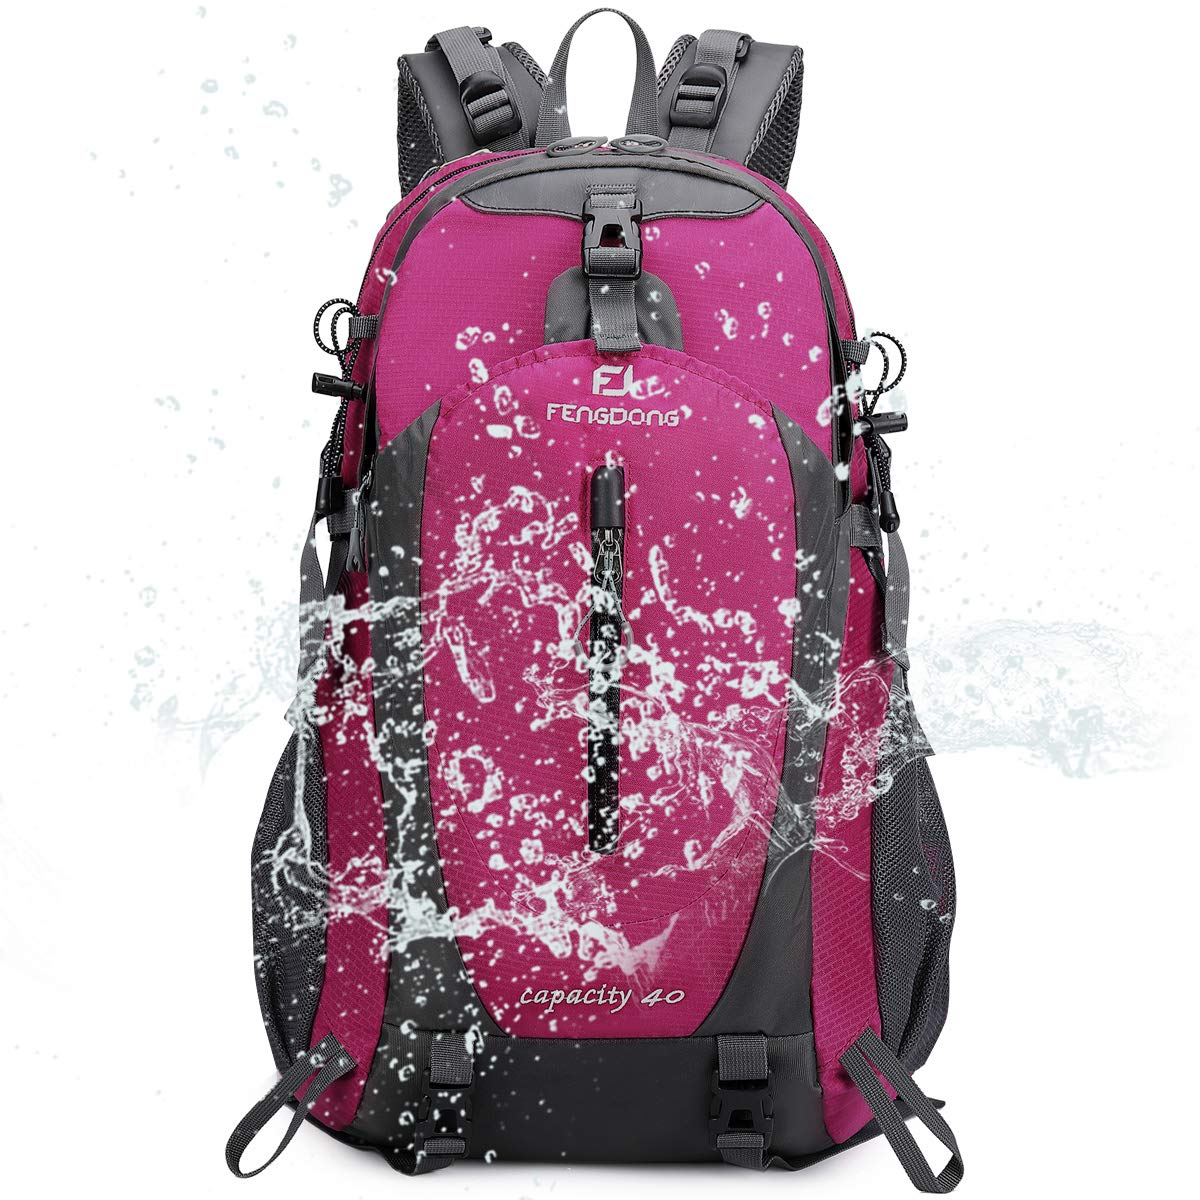 40L Waterproof Lightweight Hiking,Camping,Travel Backpack For Men Women